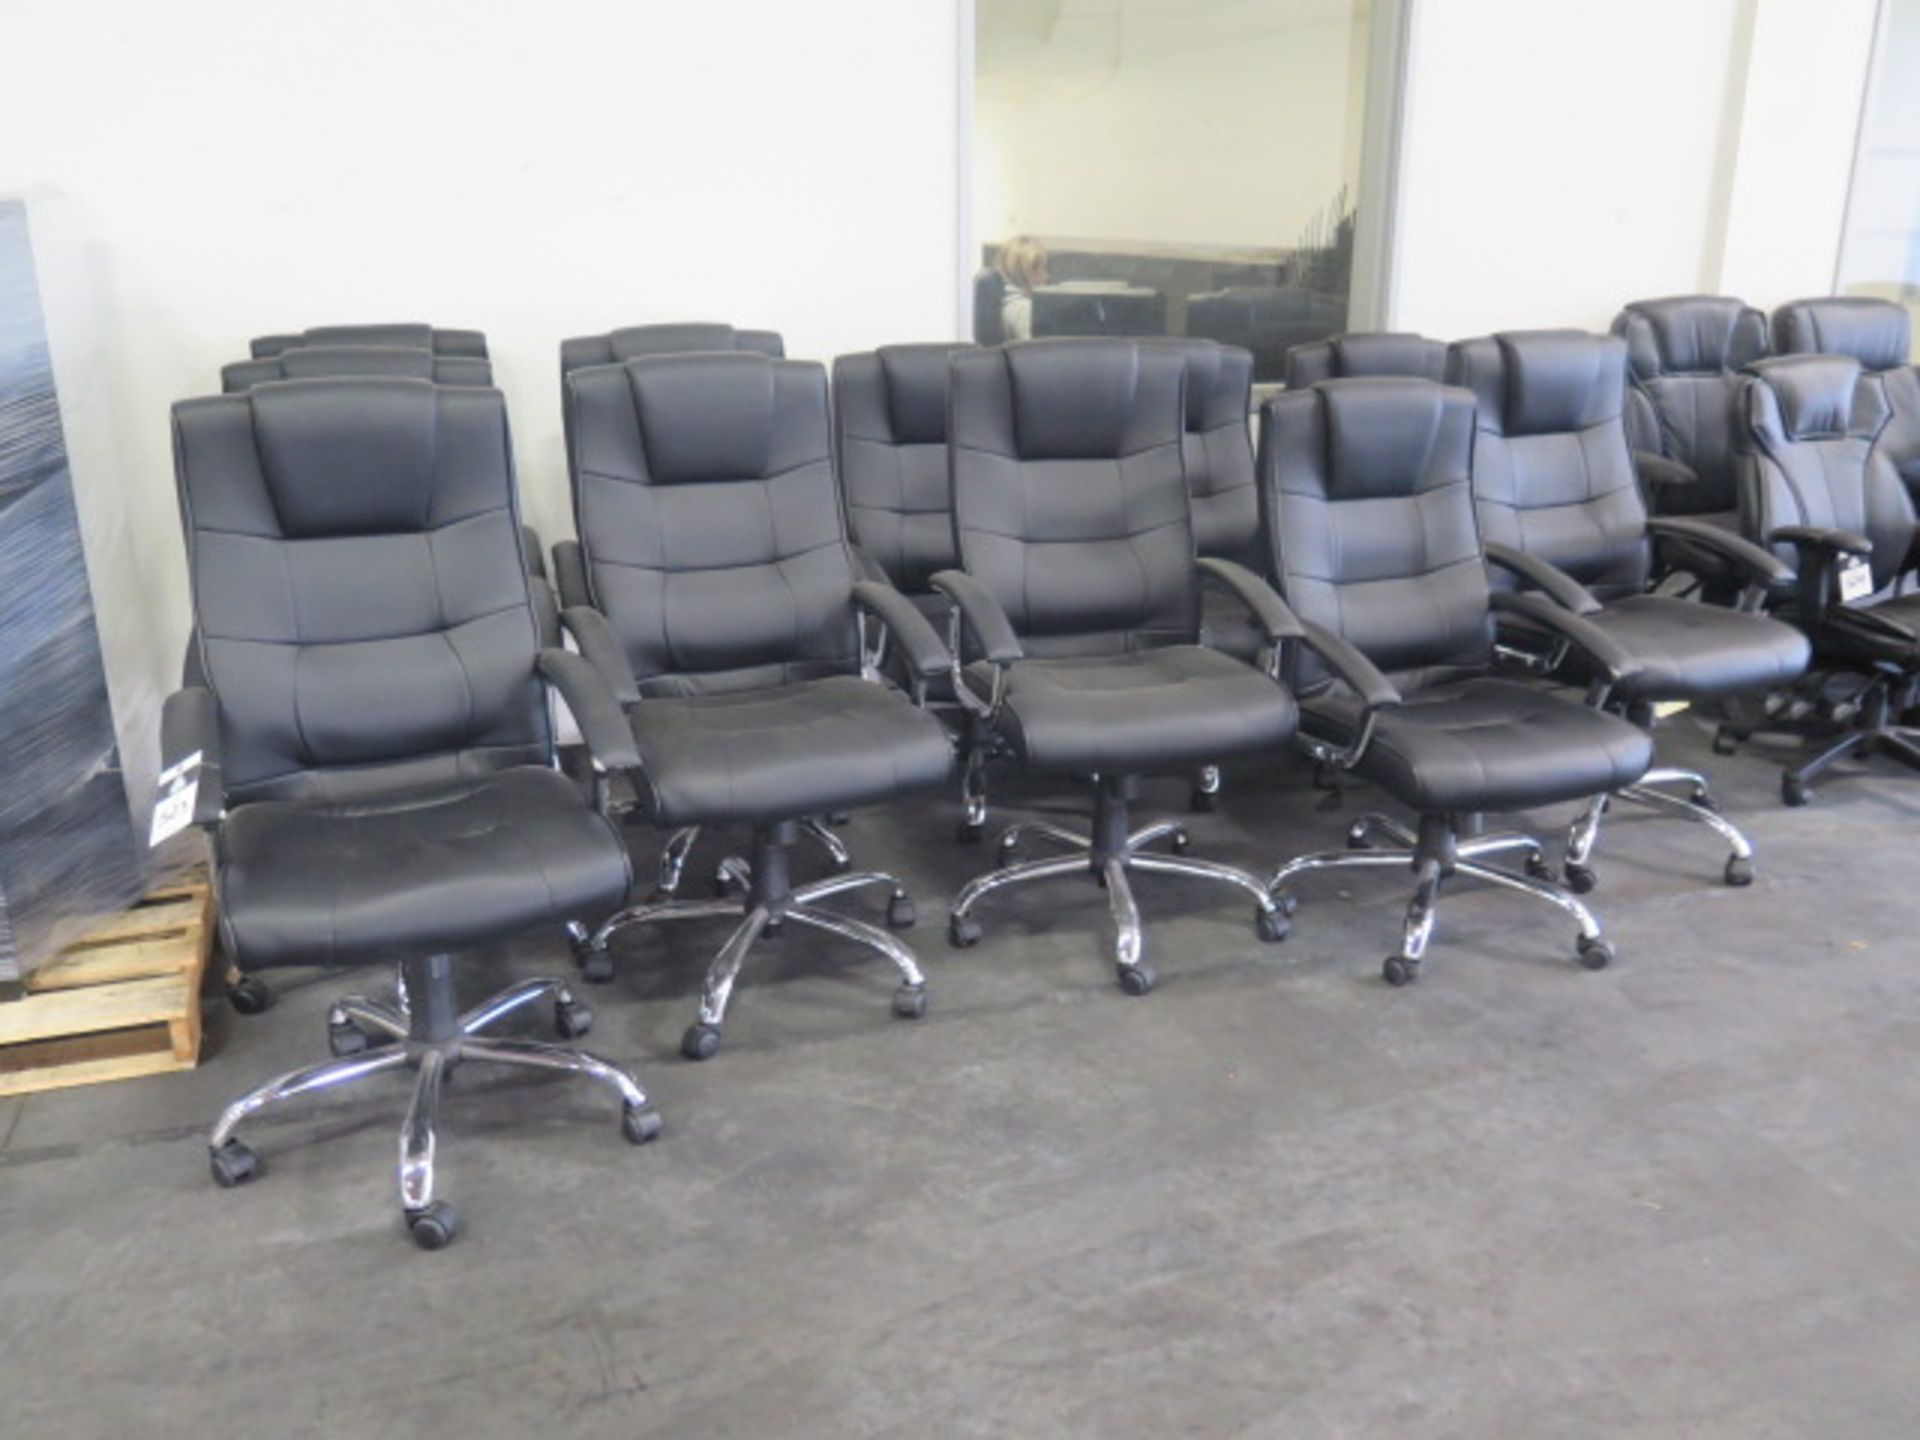 Conference / Office Chairs (11) (SOLD AS-IS - NO WARRANTY)